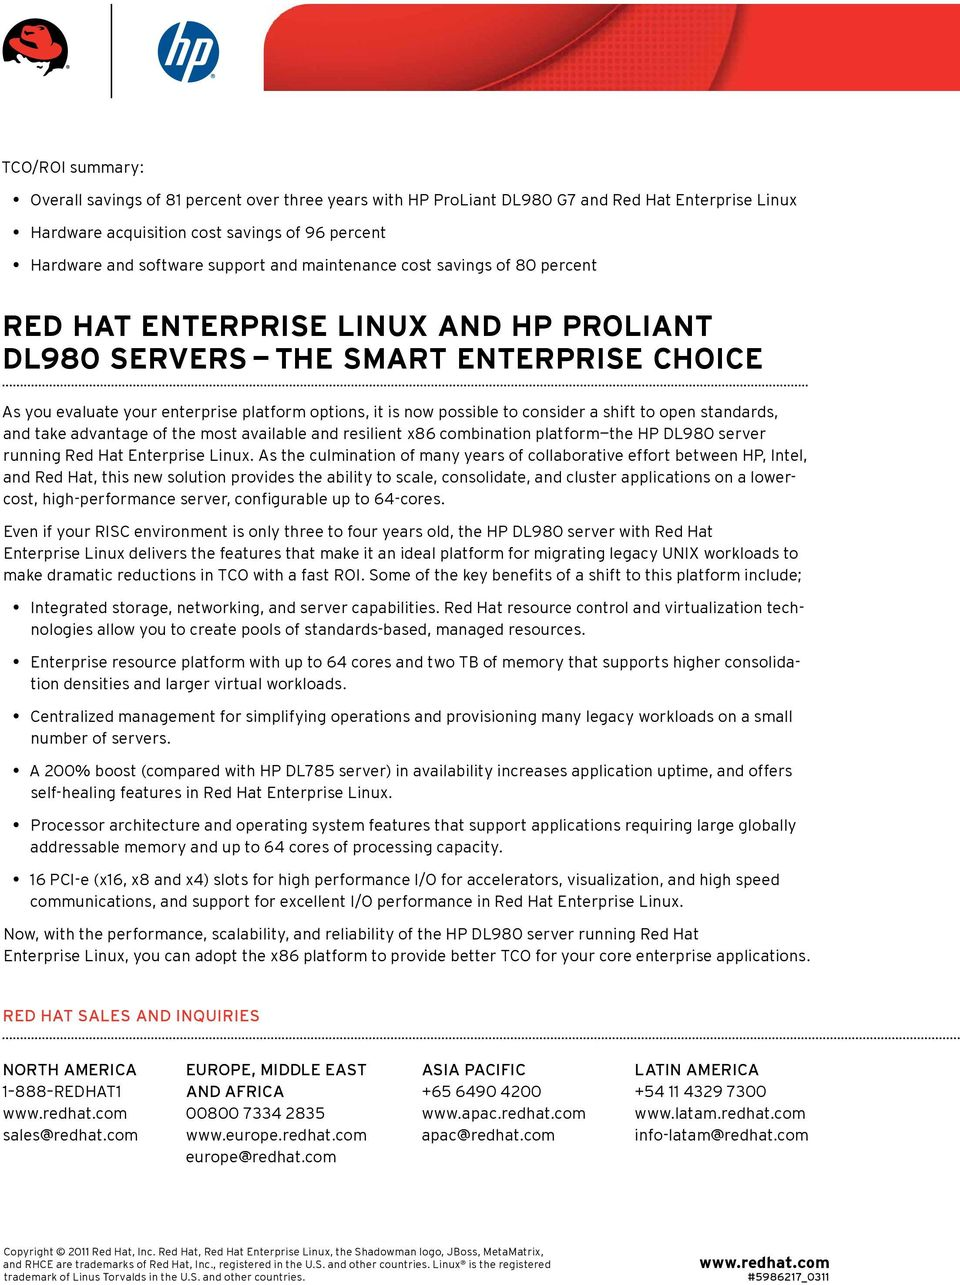 consider a shift to open standards, and take advantage of the most available and resilient x86 combination platform the HP DL980 server running Red Hat Enterprise Linux.